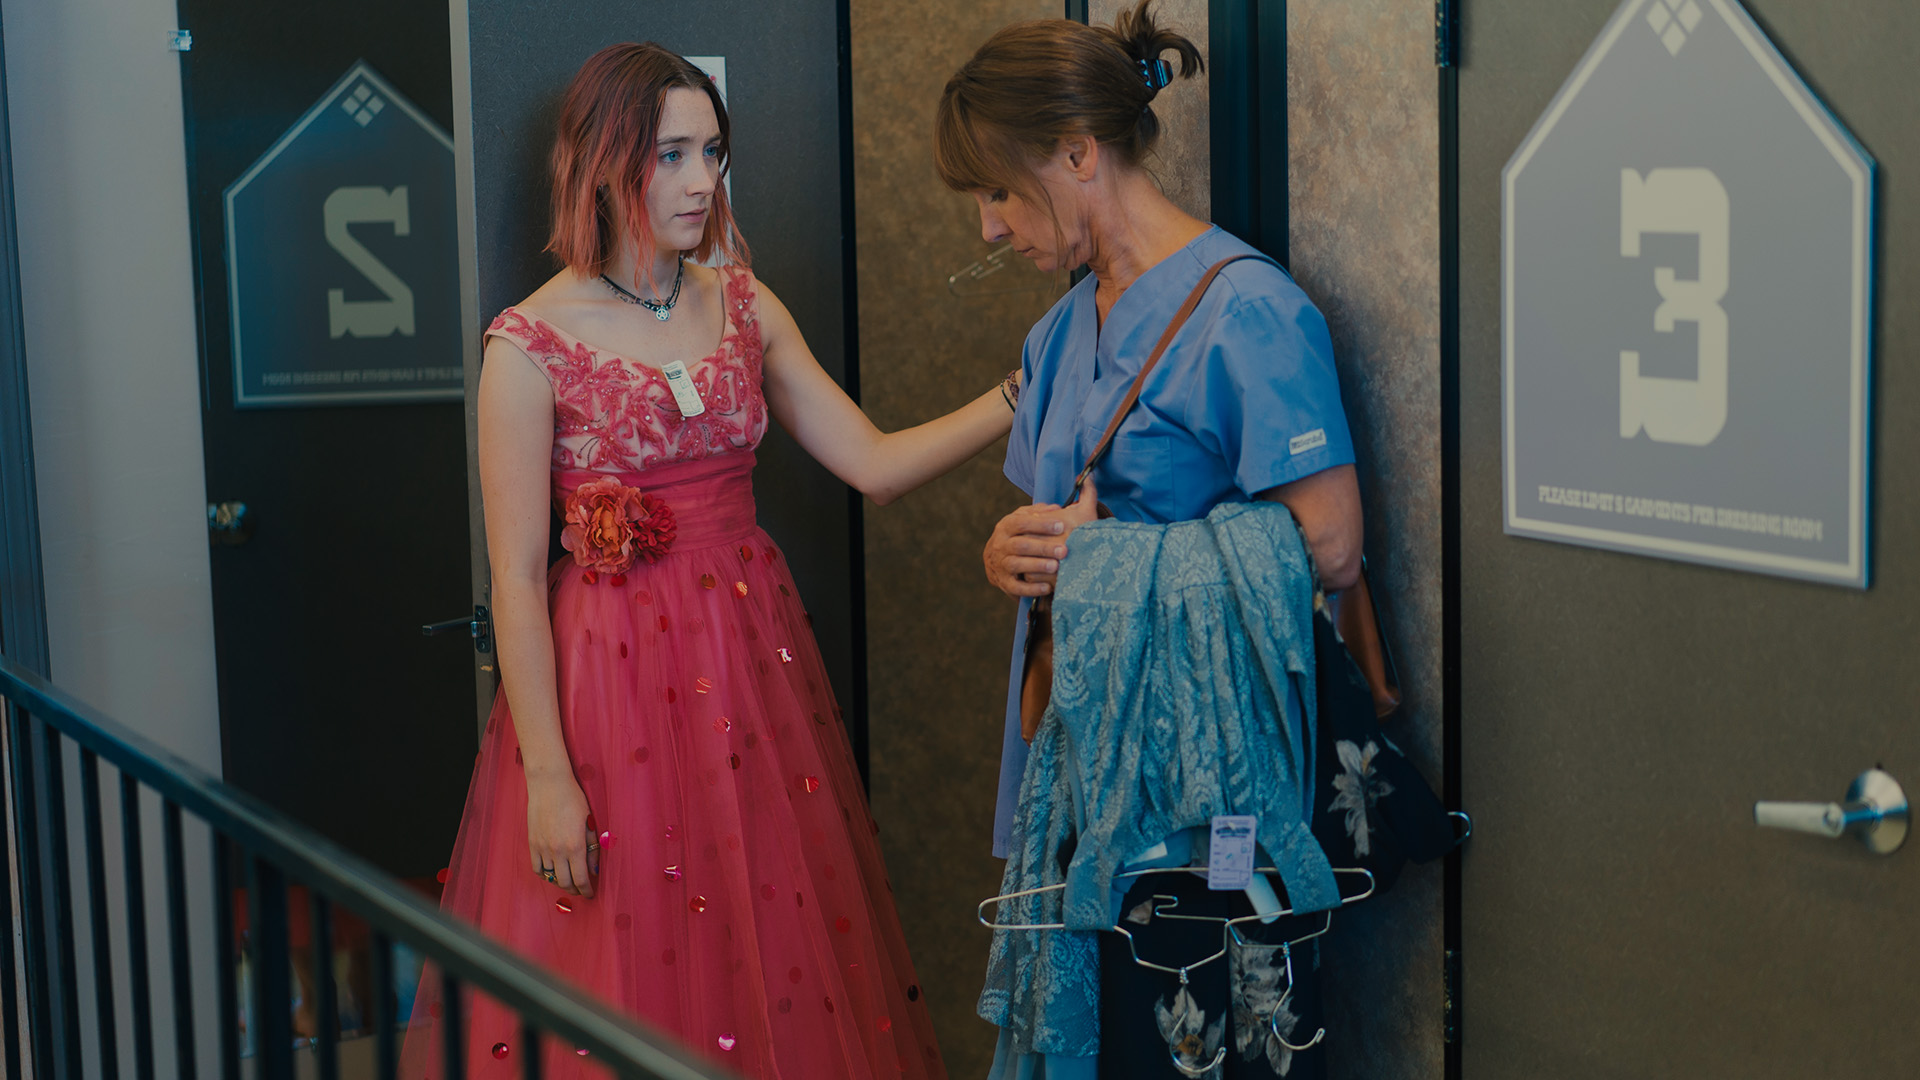 Movie reviews: 'Lady Bird,' 'Three Billboards,' 'Orient Express'